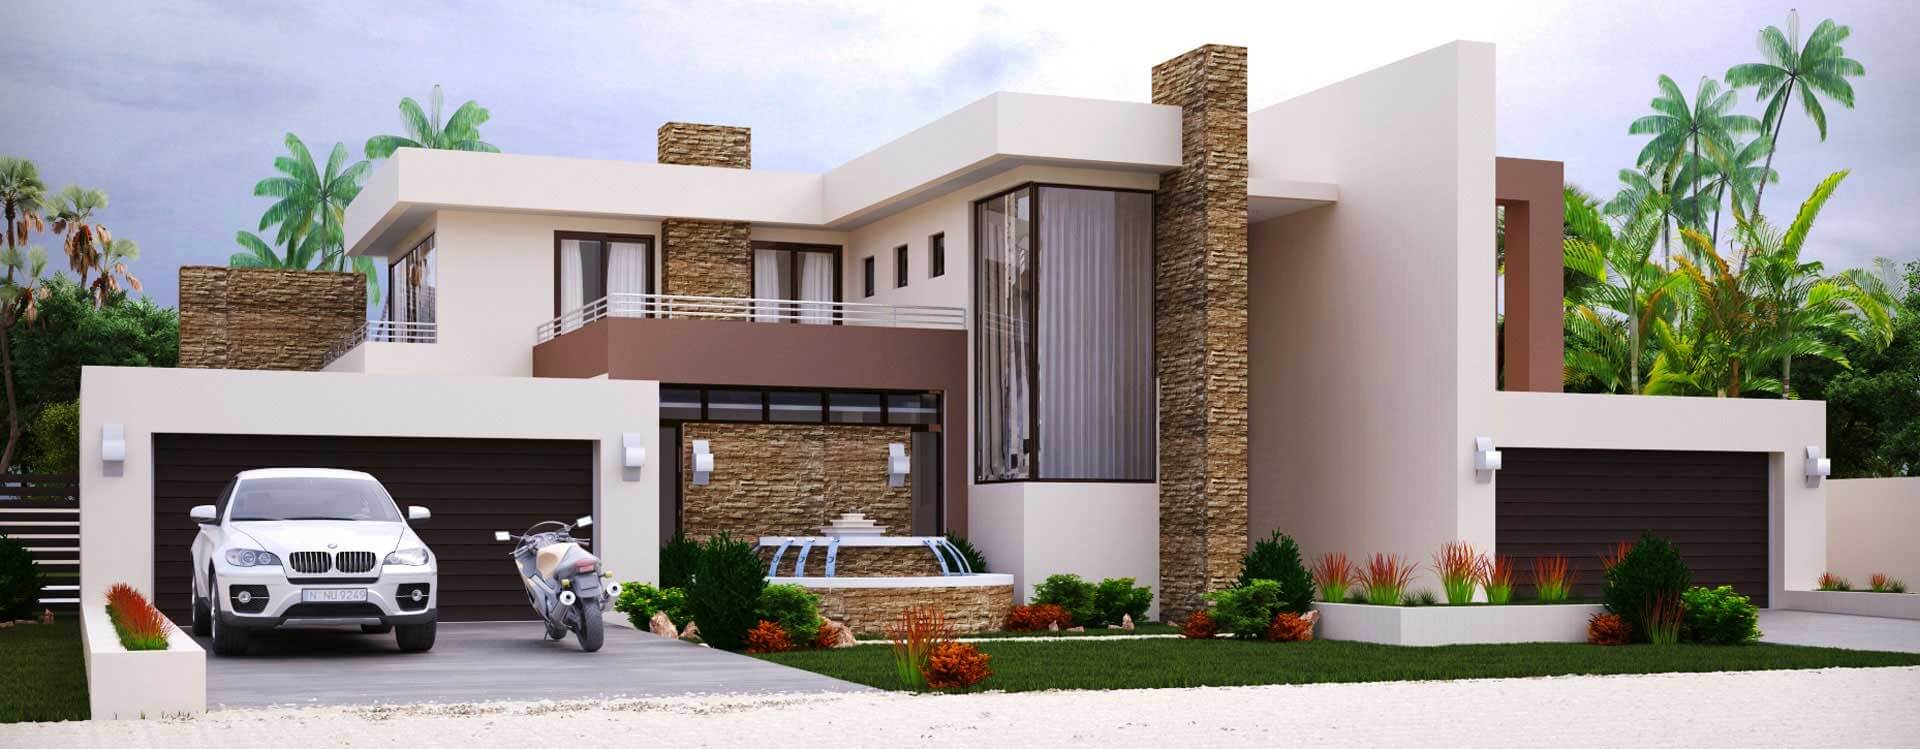 House Plan Designs home plans modern house design 2012003 Modern Style House Plan 4 Bedroom Double Storey Floor Plans Home Design